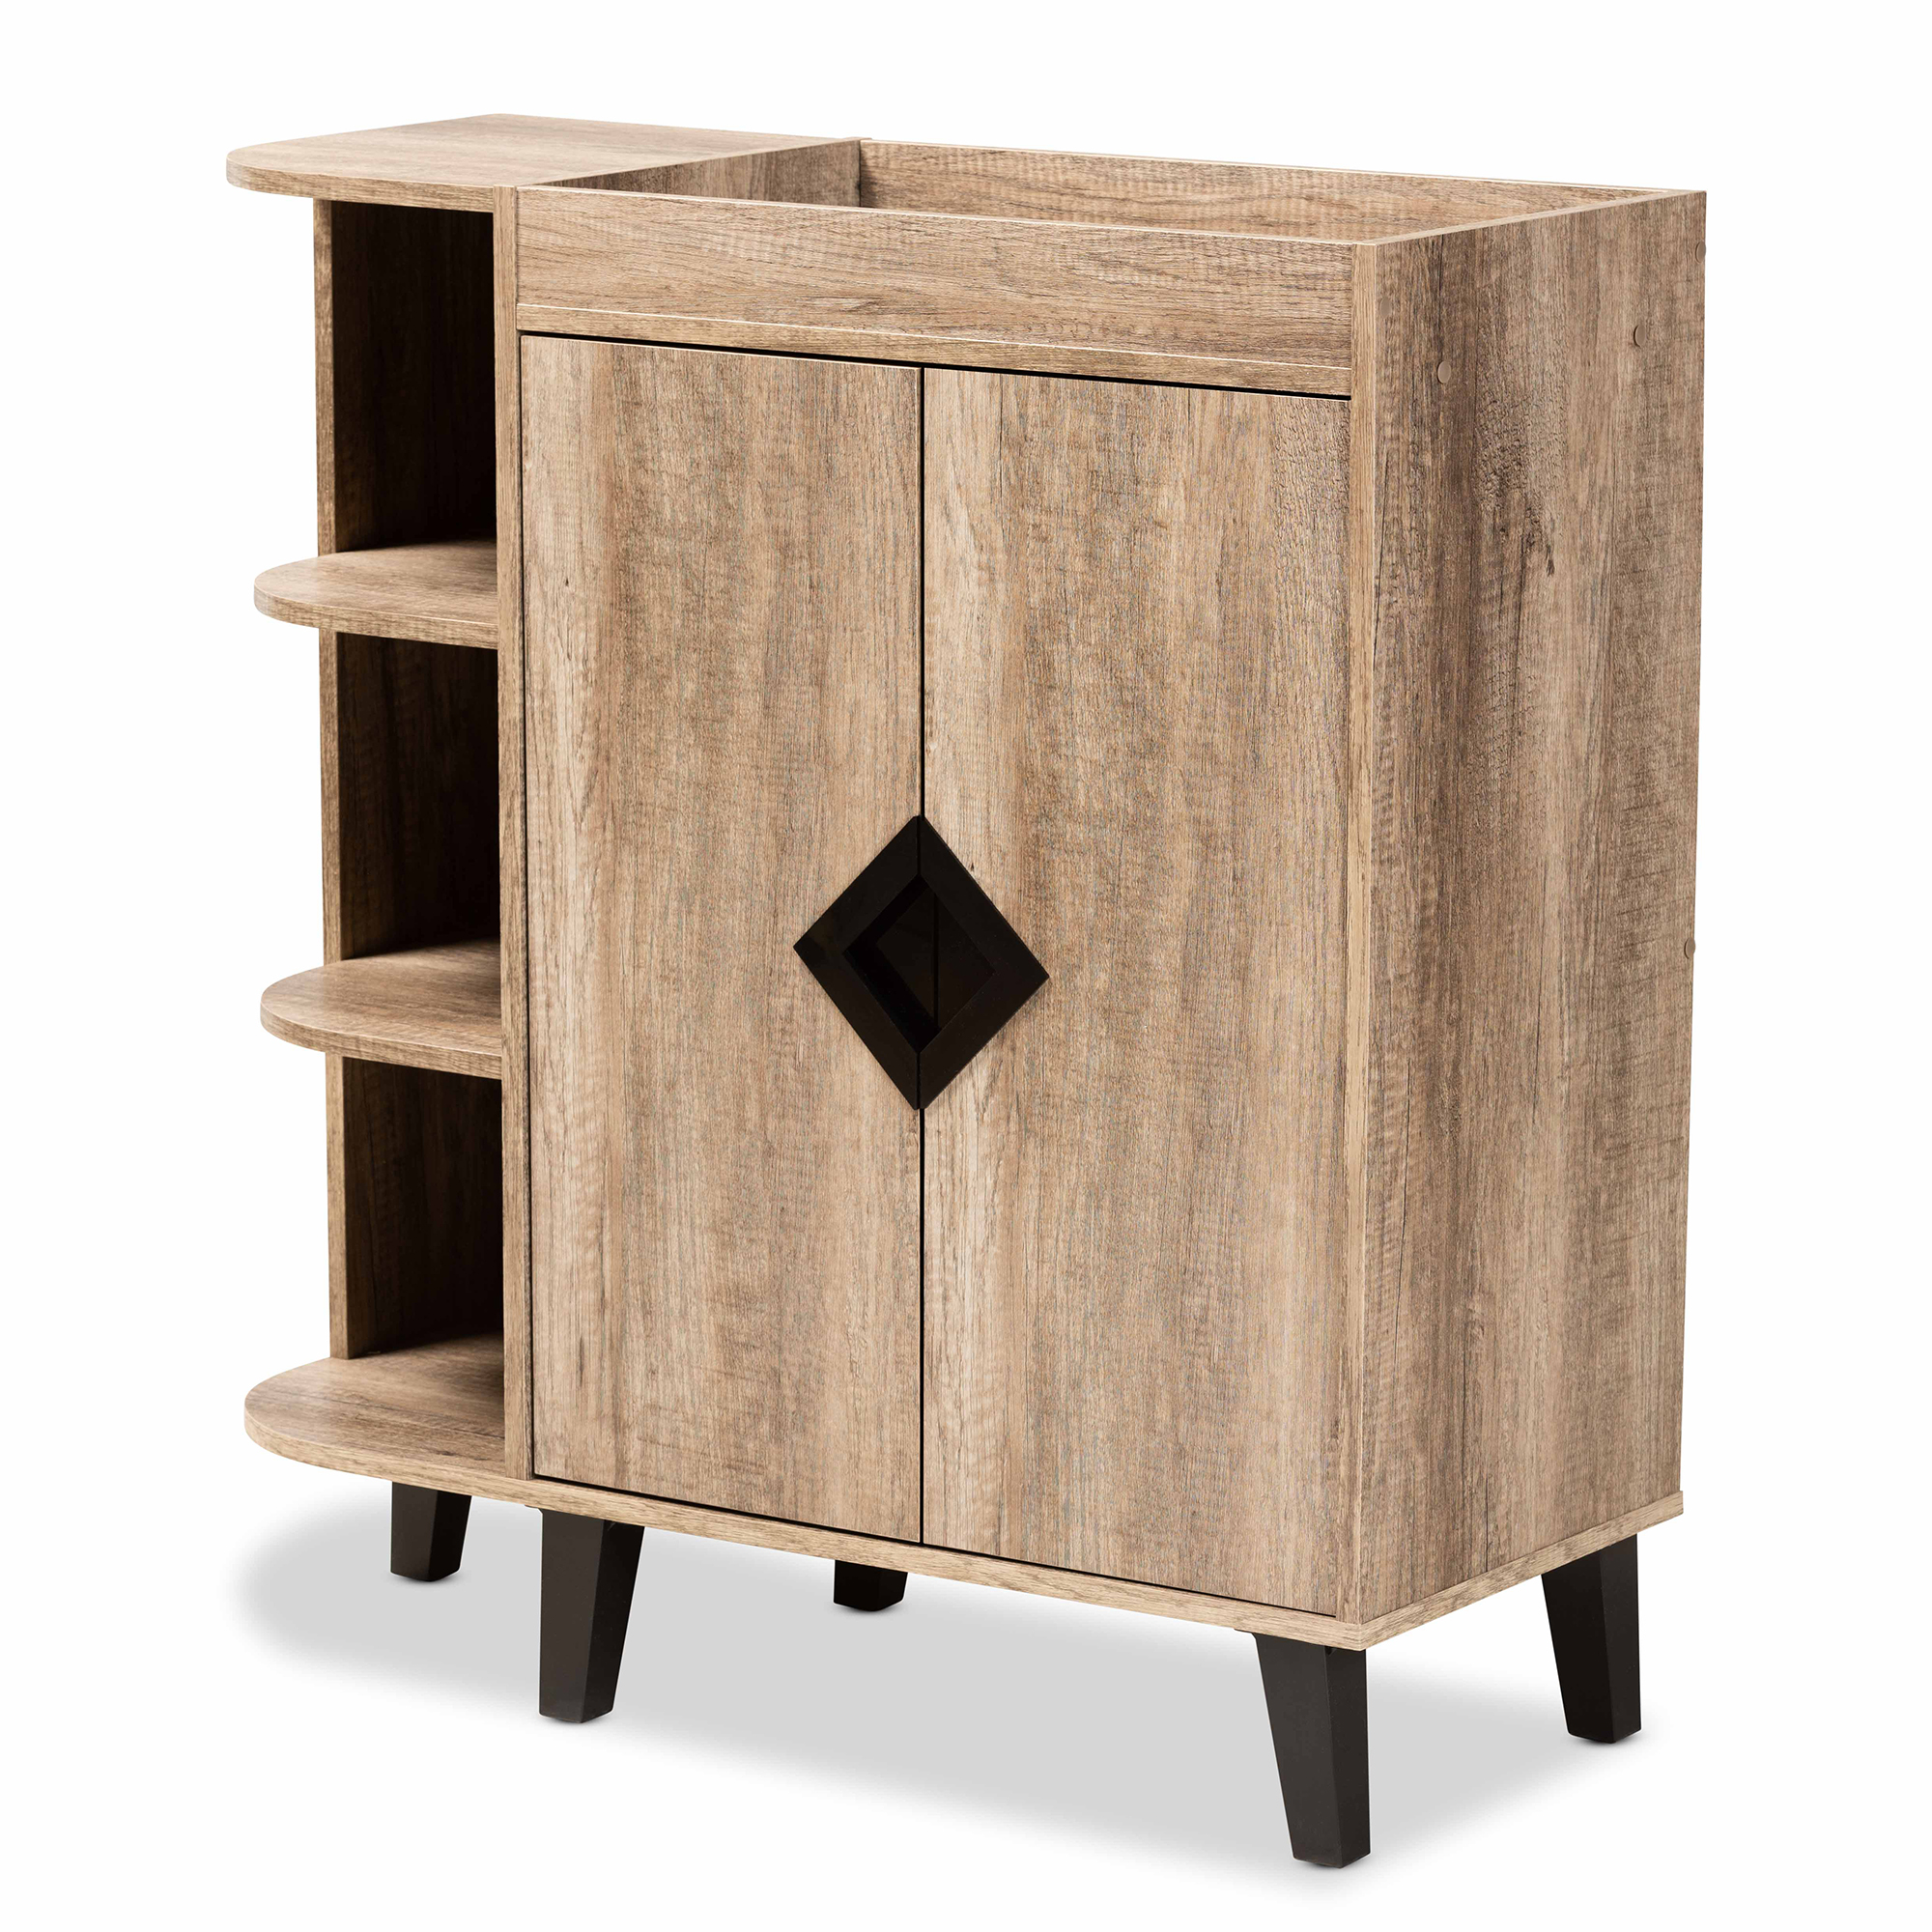 Baxton Studio Wales Particle Board Shoe Cabinet - Brown/Black